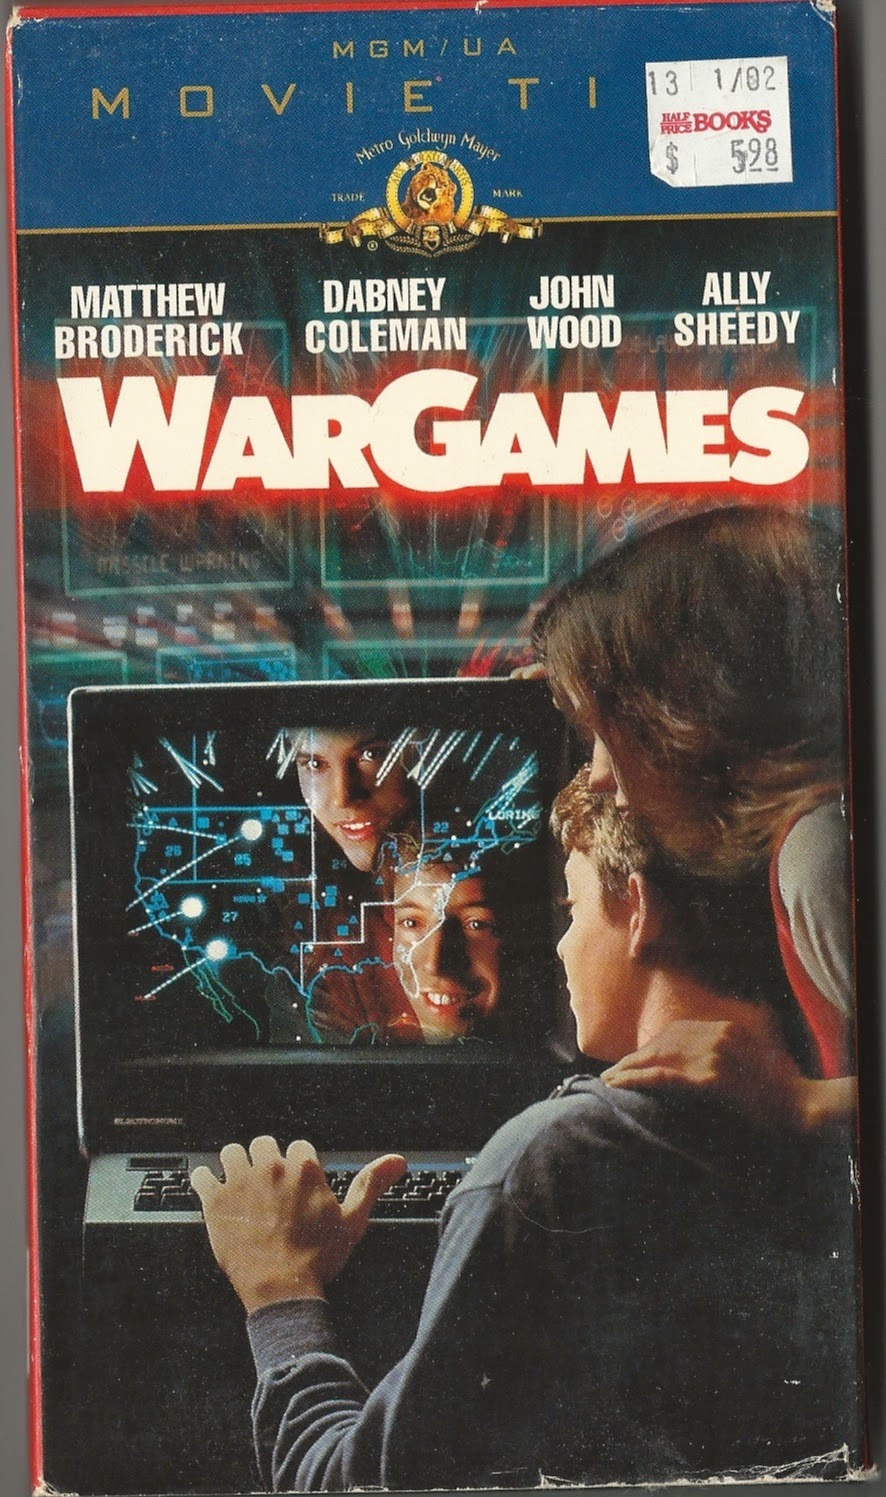 Box cover for VHS tape showing two teenagers at a computer about 1982.